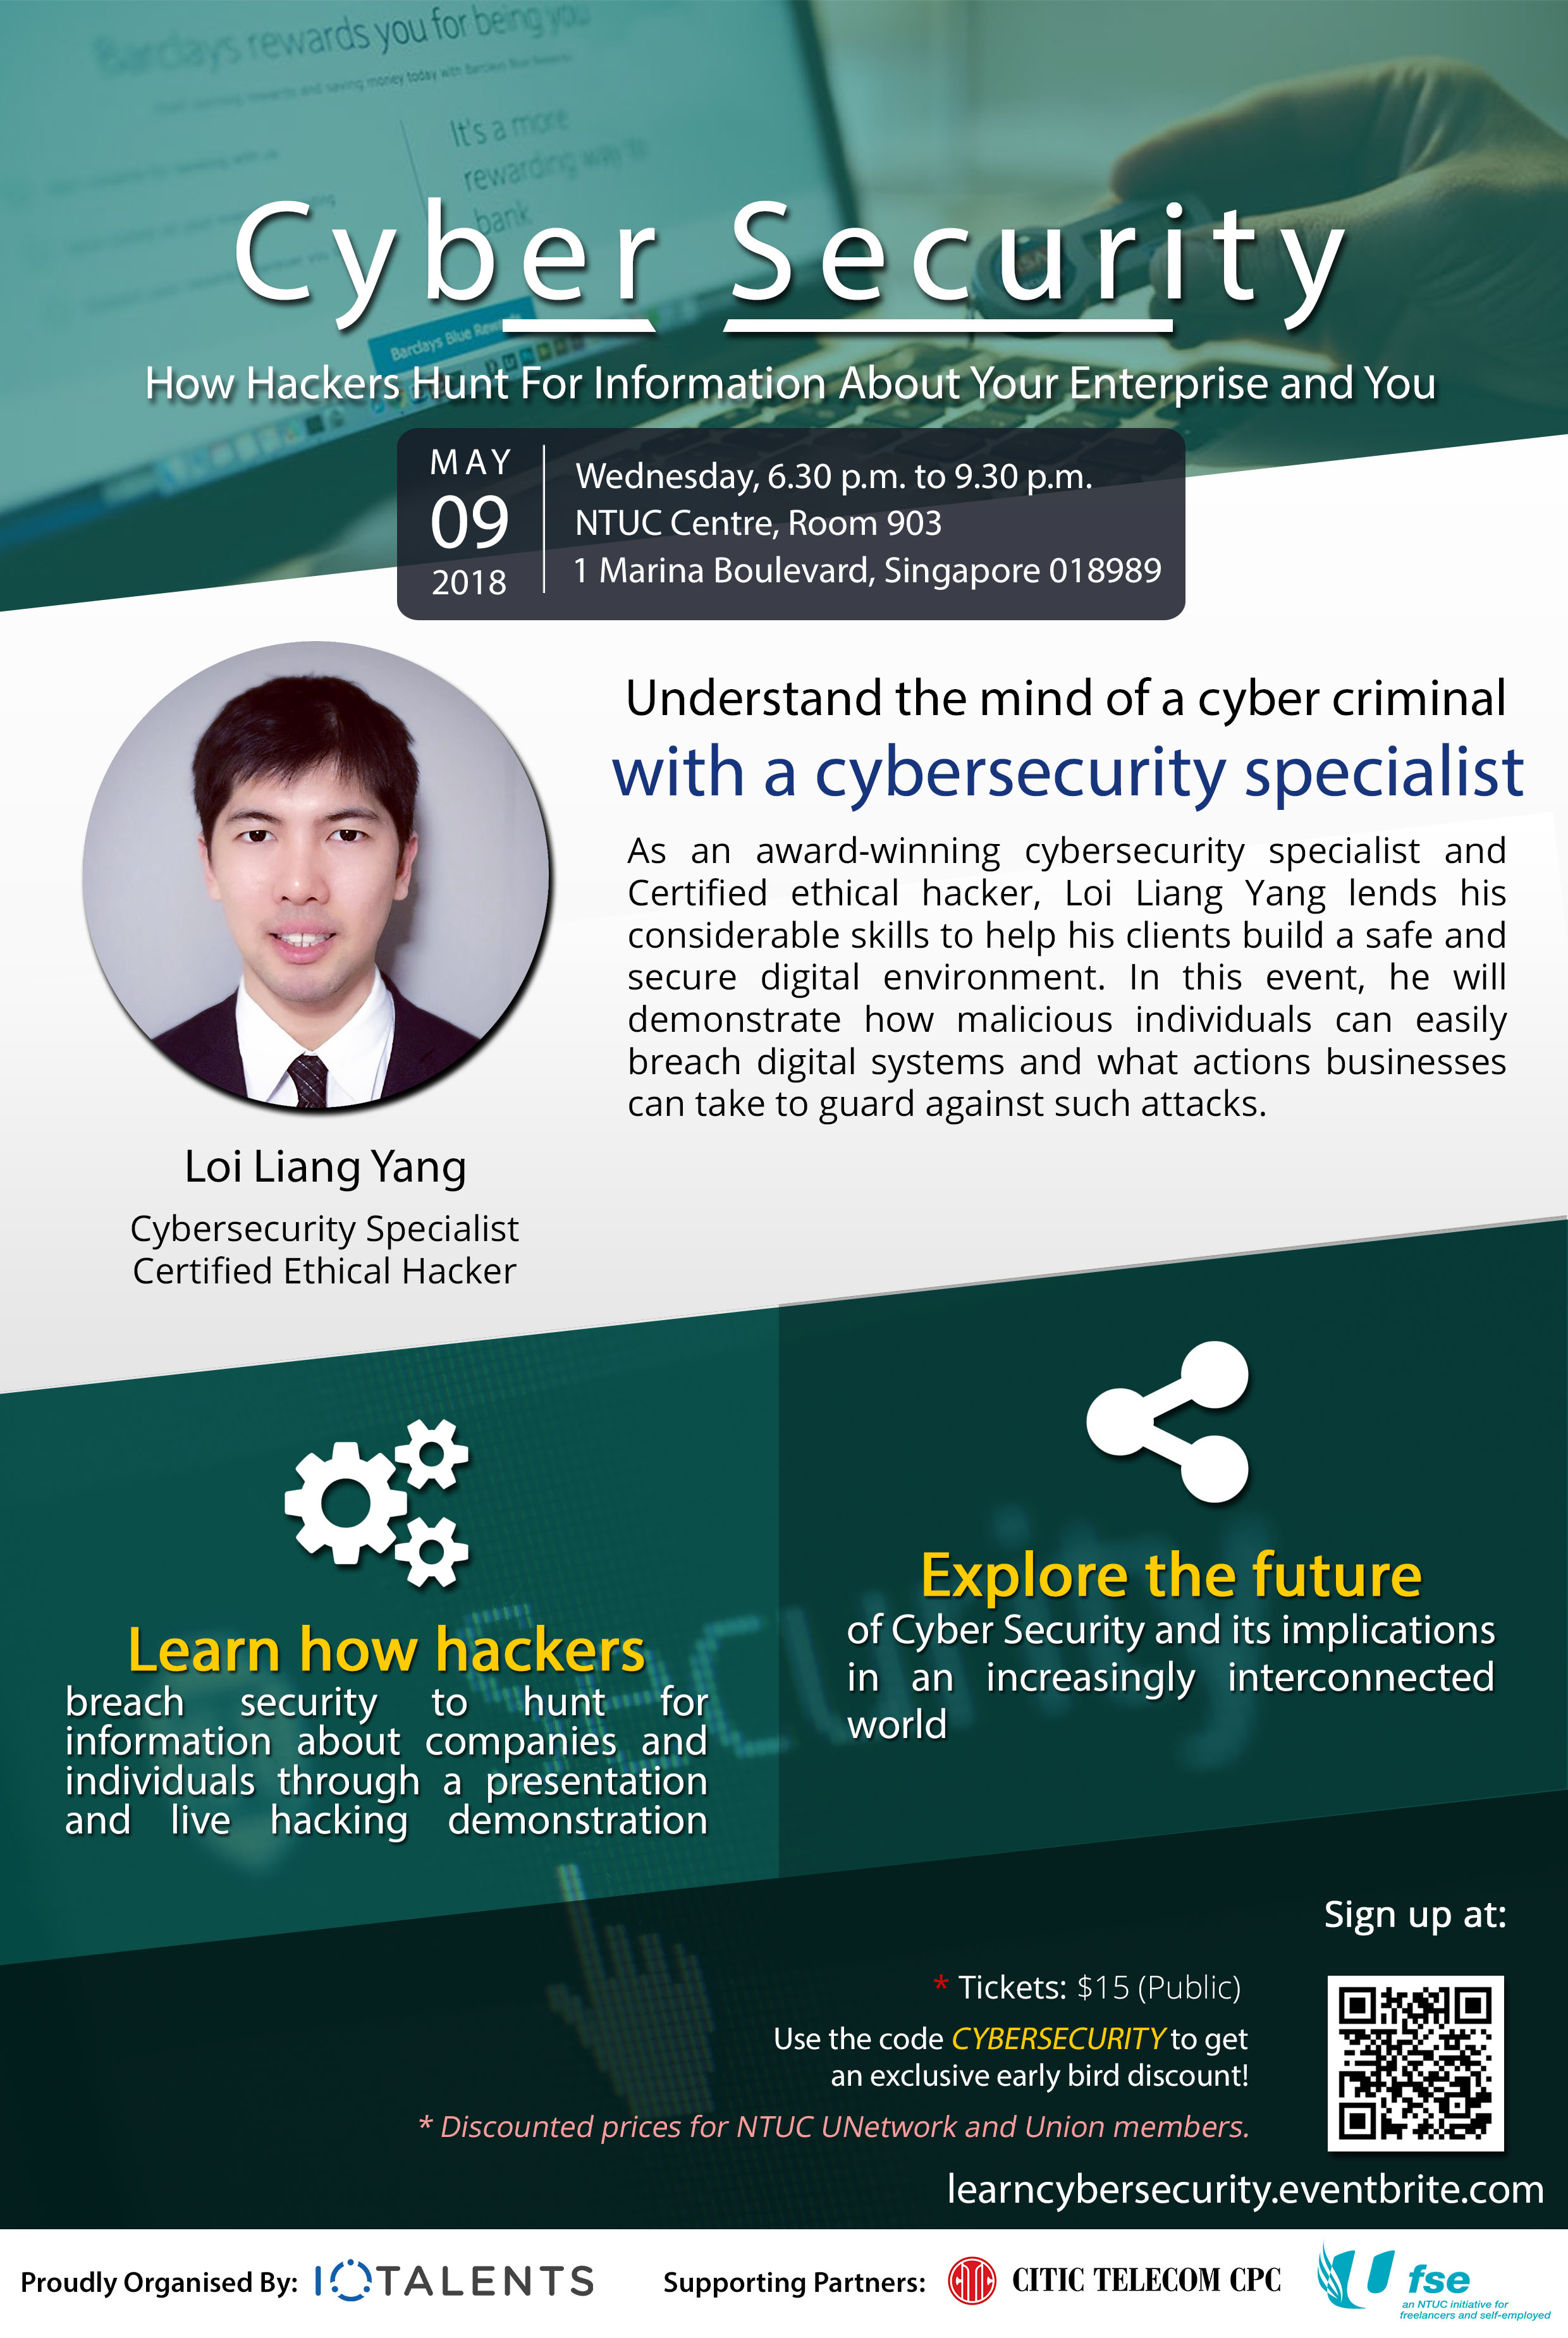 Understand the mind of a cyber criminal through an evening of learning with award winning cyber security expert, Loi Liang Yang.